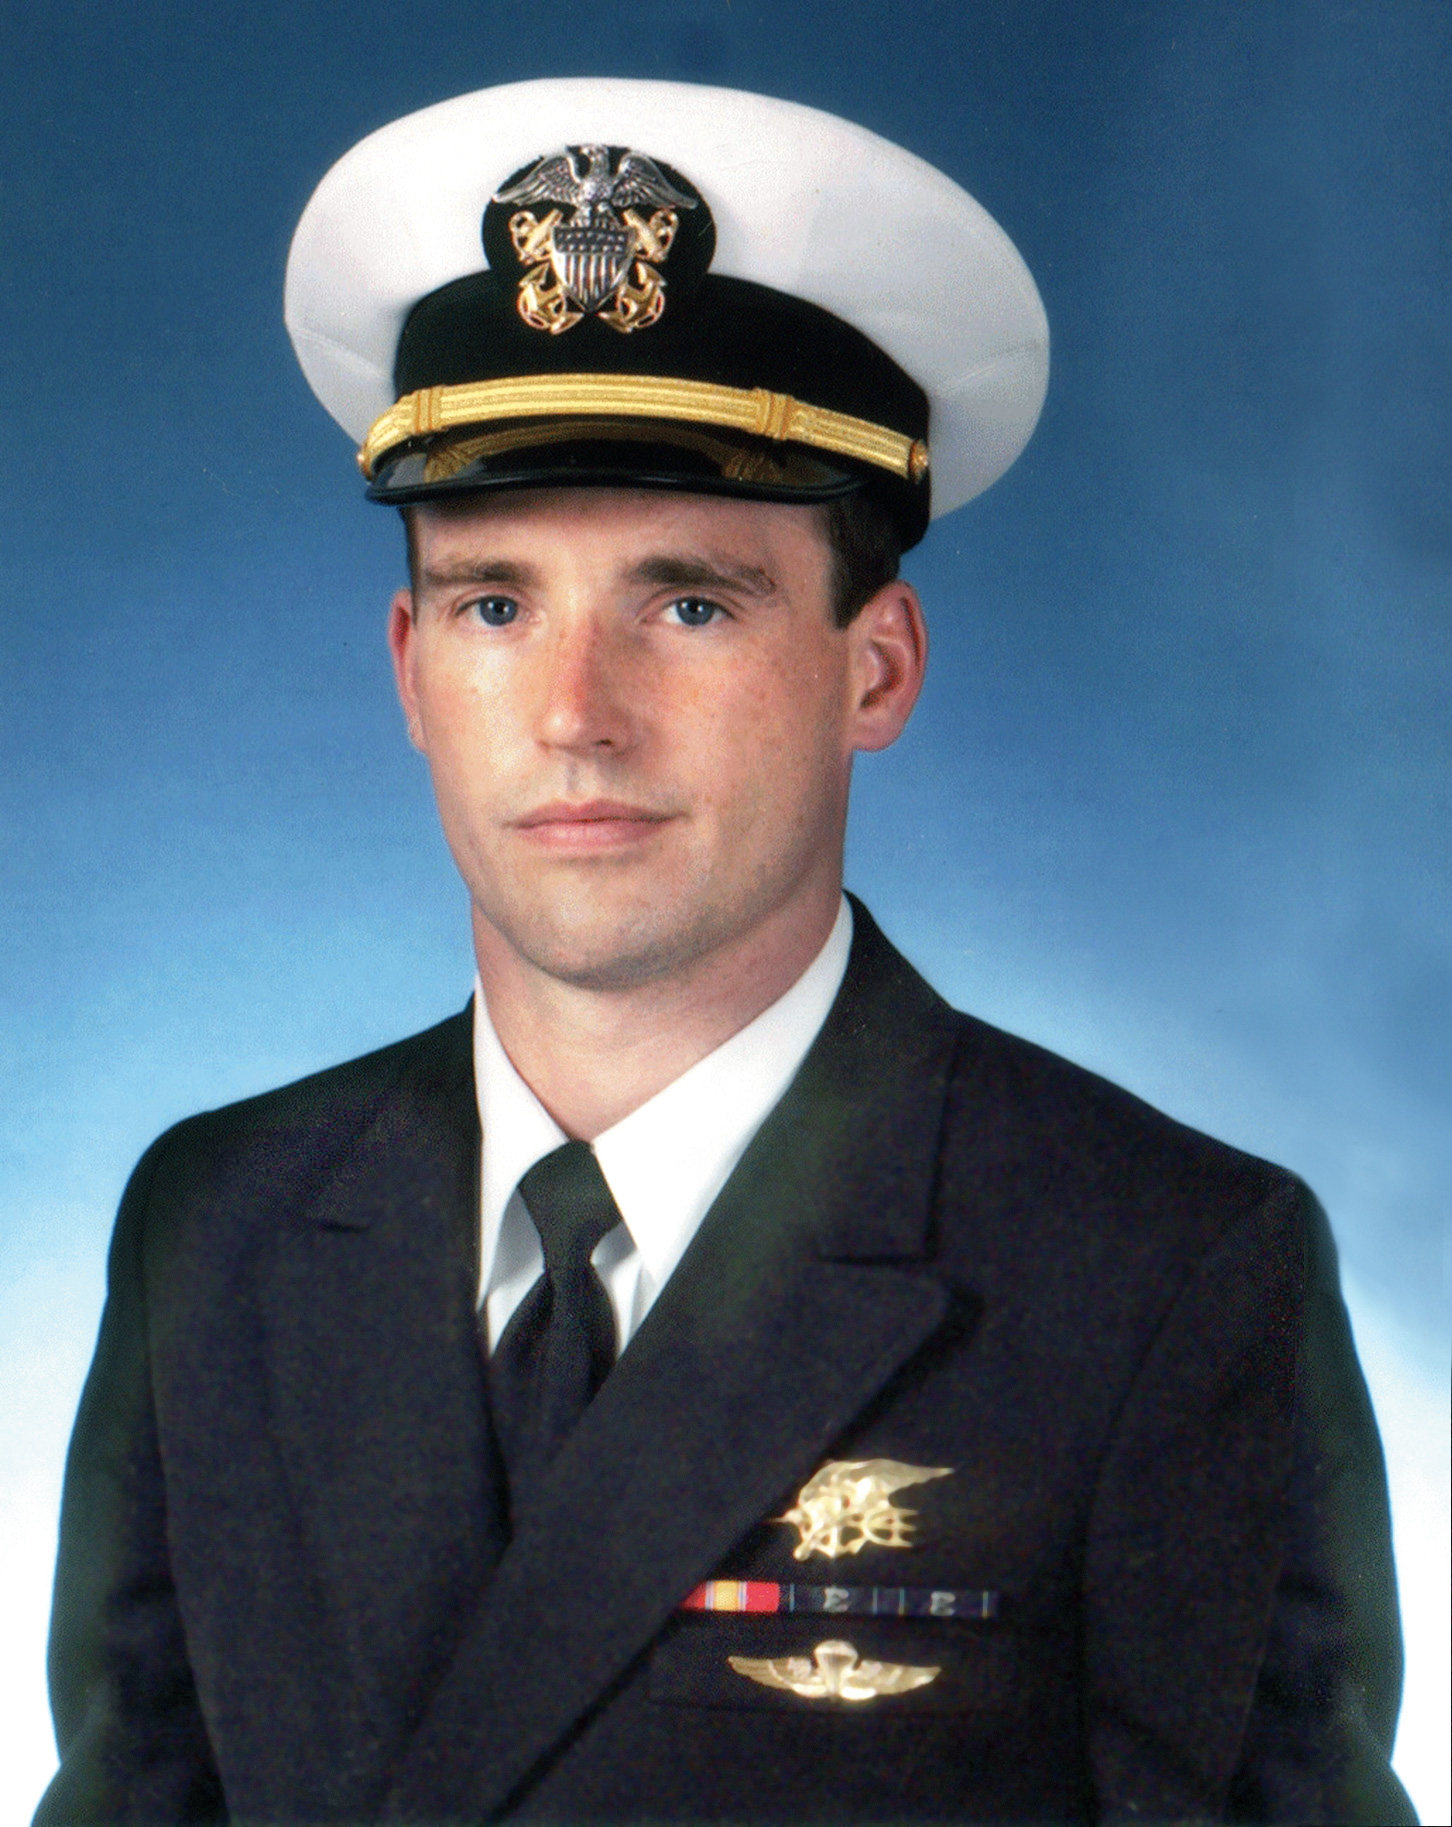 Michael P. Murphy, Medal of Honor recipient